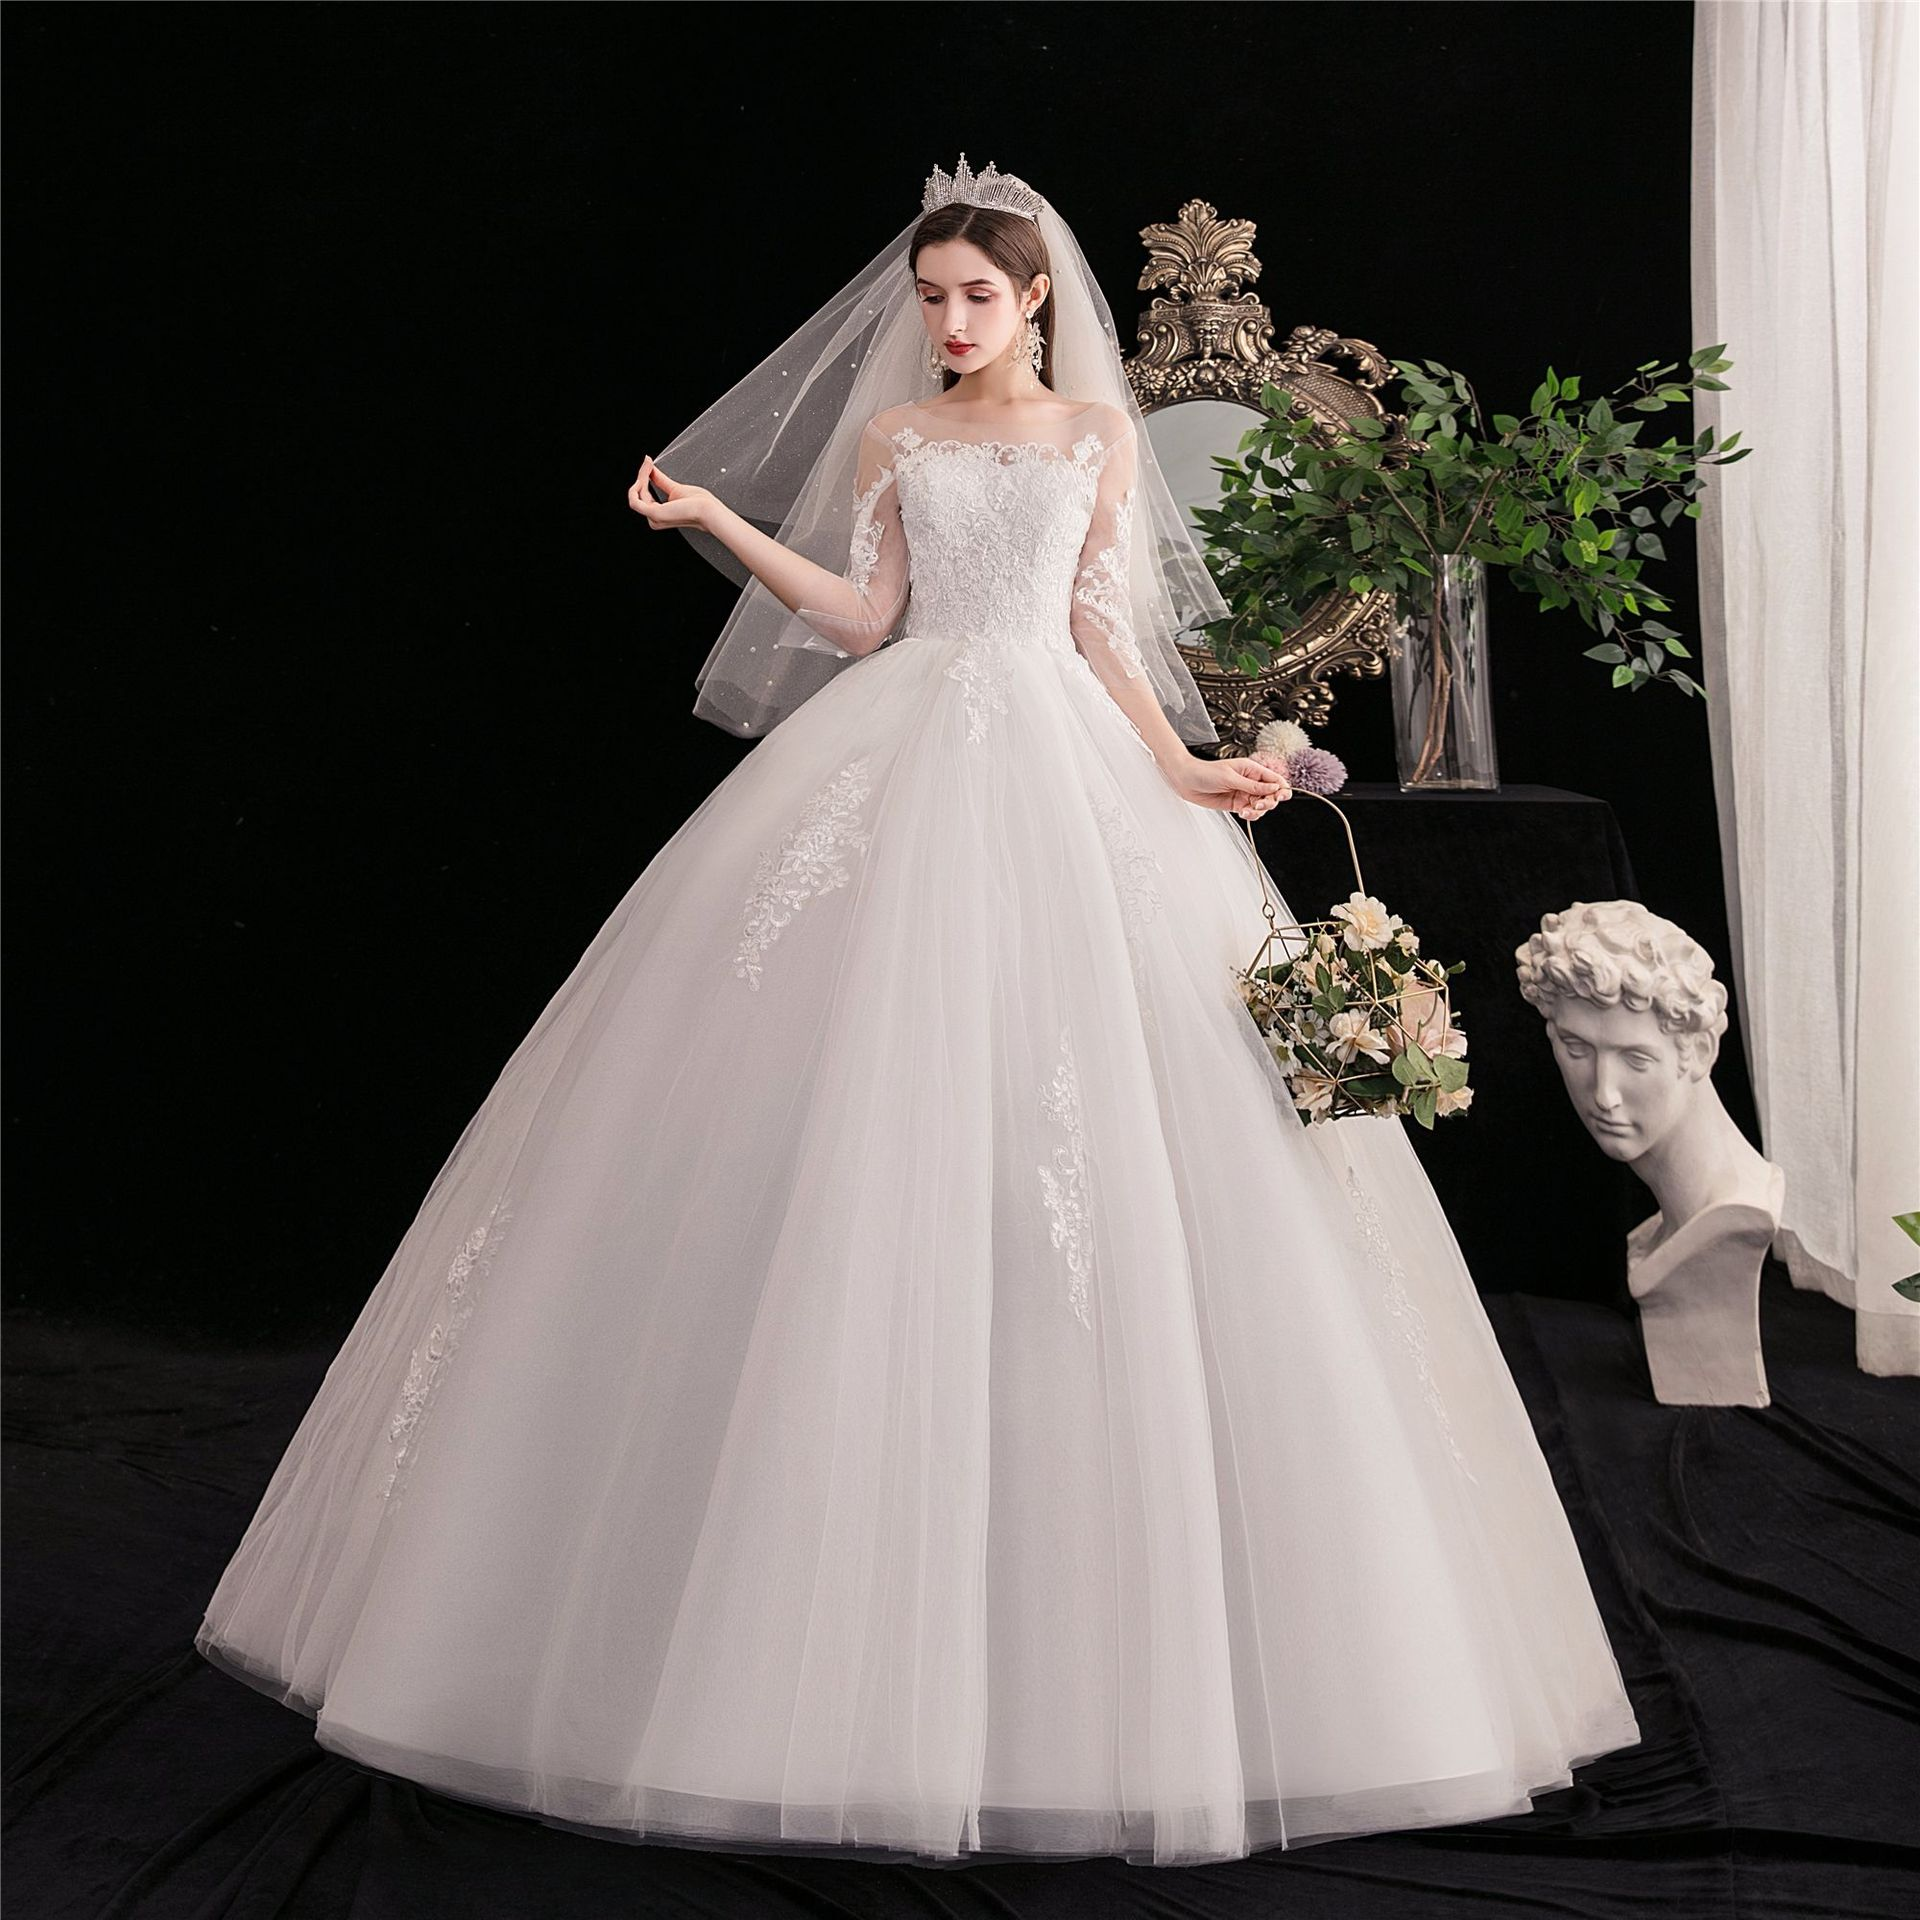 Do Dower New Arrival Sexy Illusion O Neck Three Quarter Wedding Dress Noble Lace Applique Simple Plus Size Princess Ball Gown L